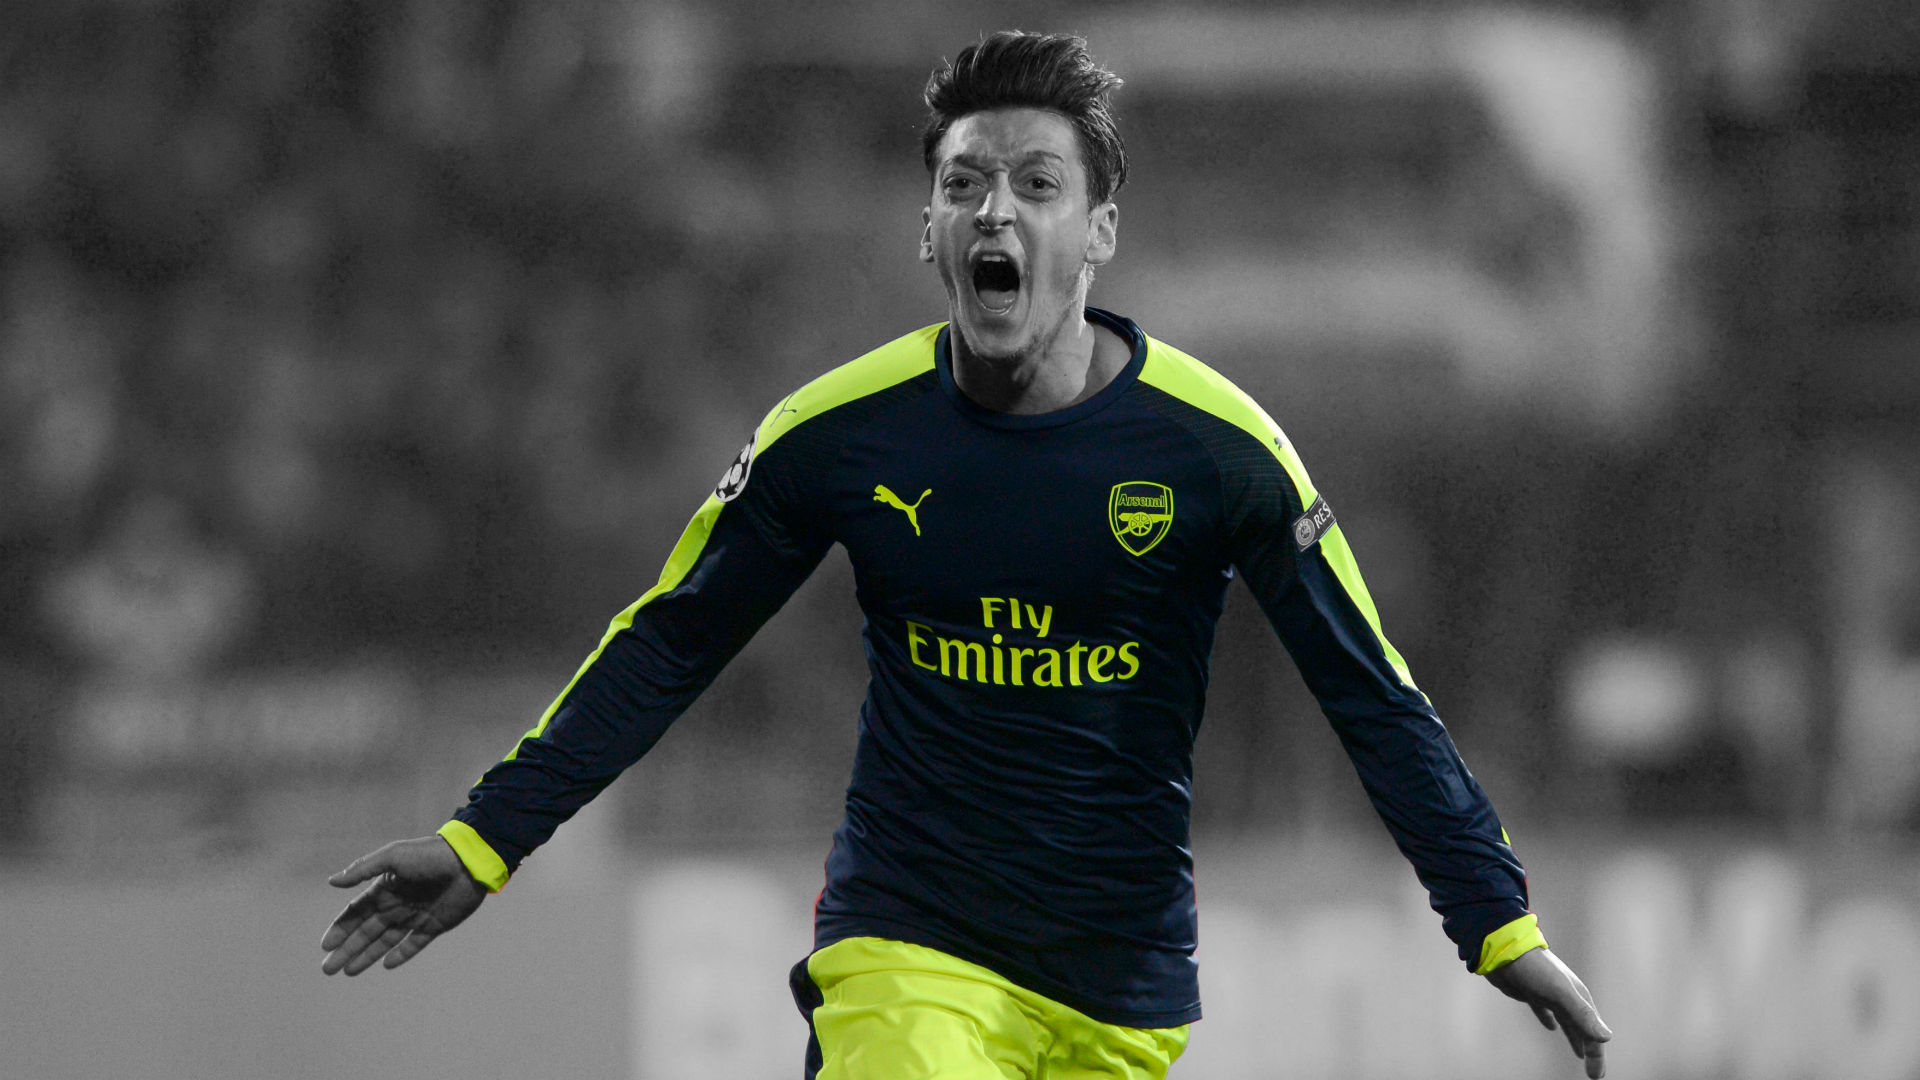 Arsenal Give Ozil Time Off To Rest Back Problem